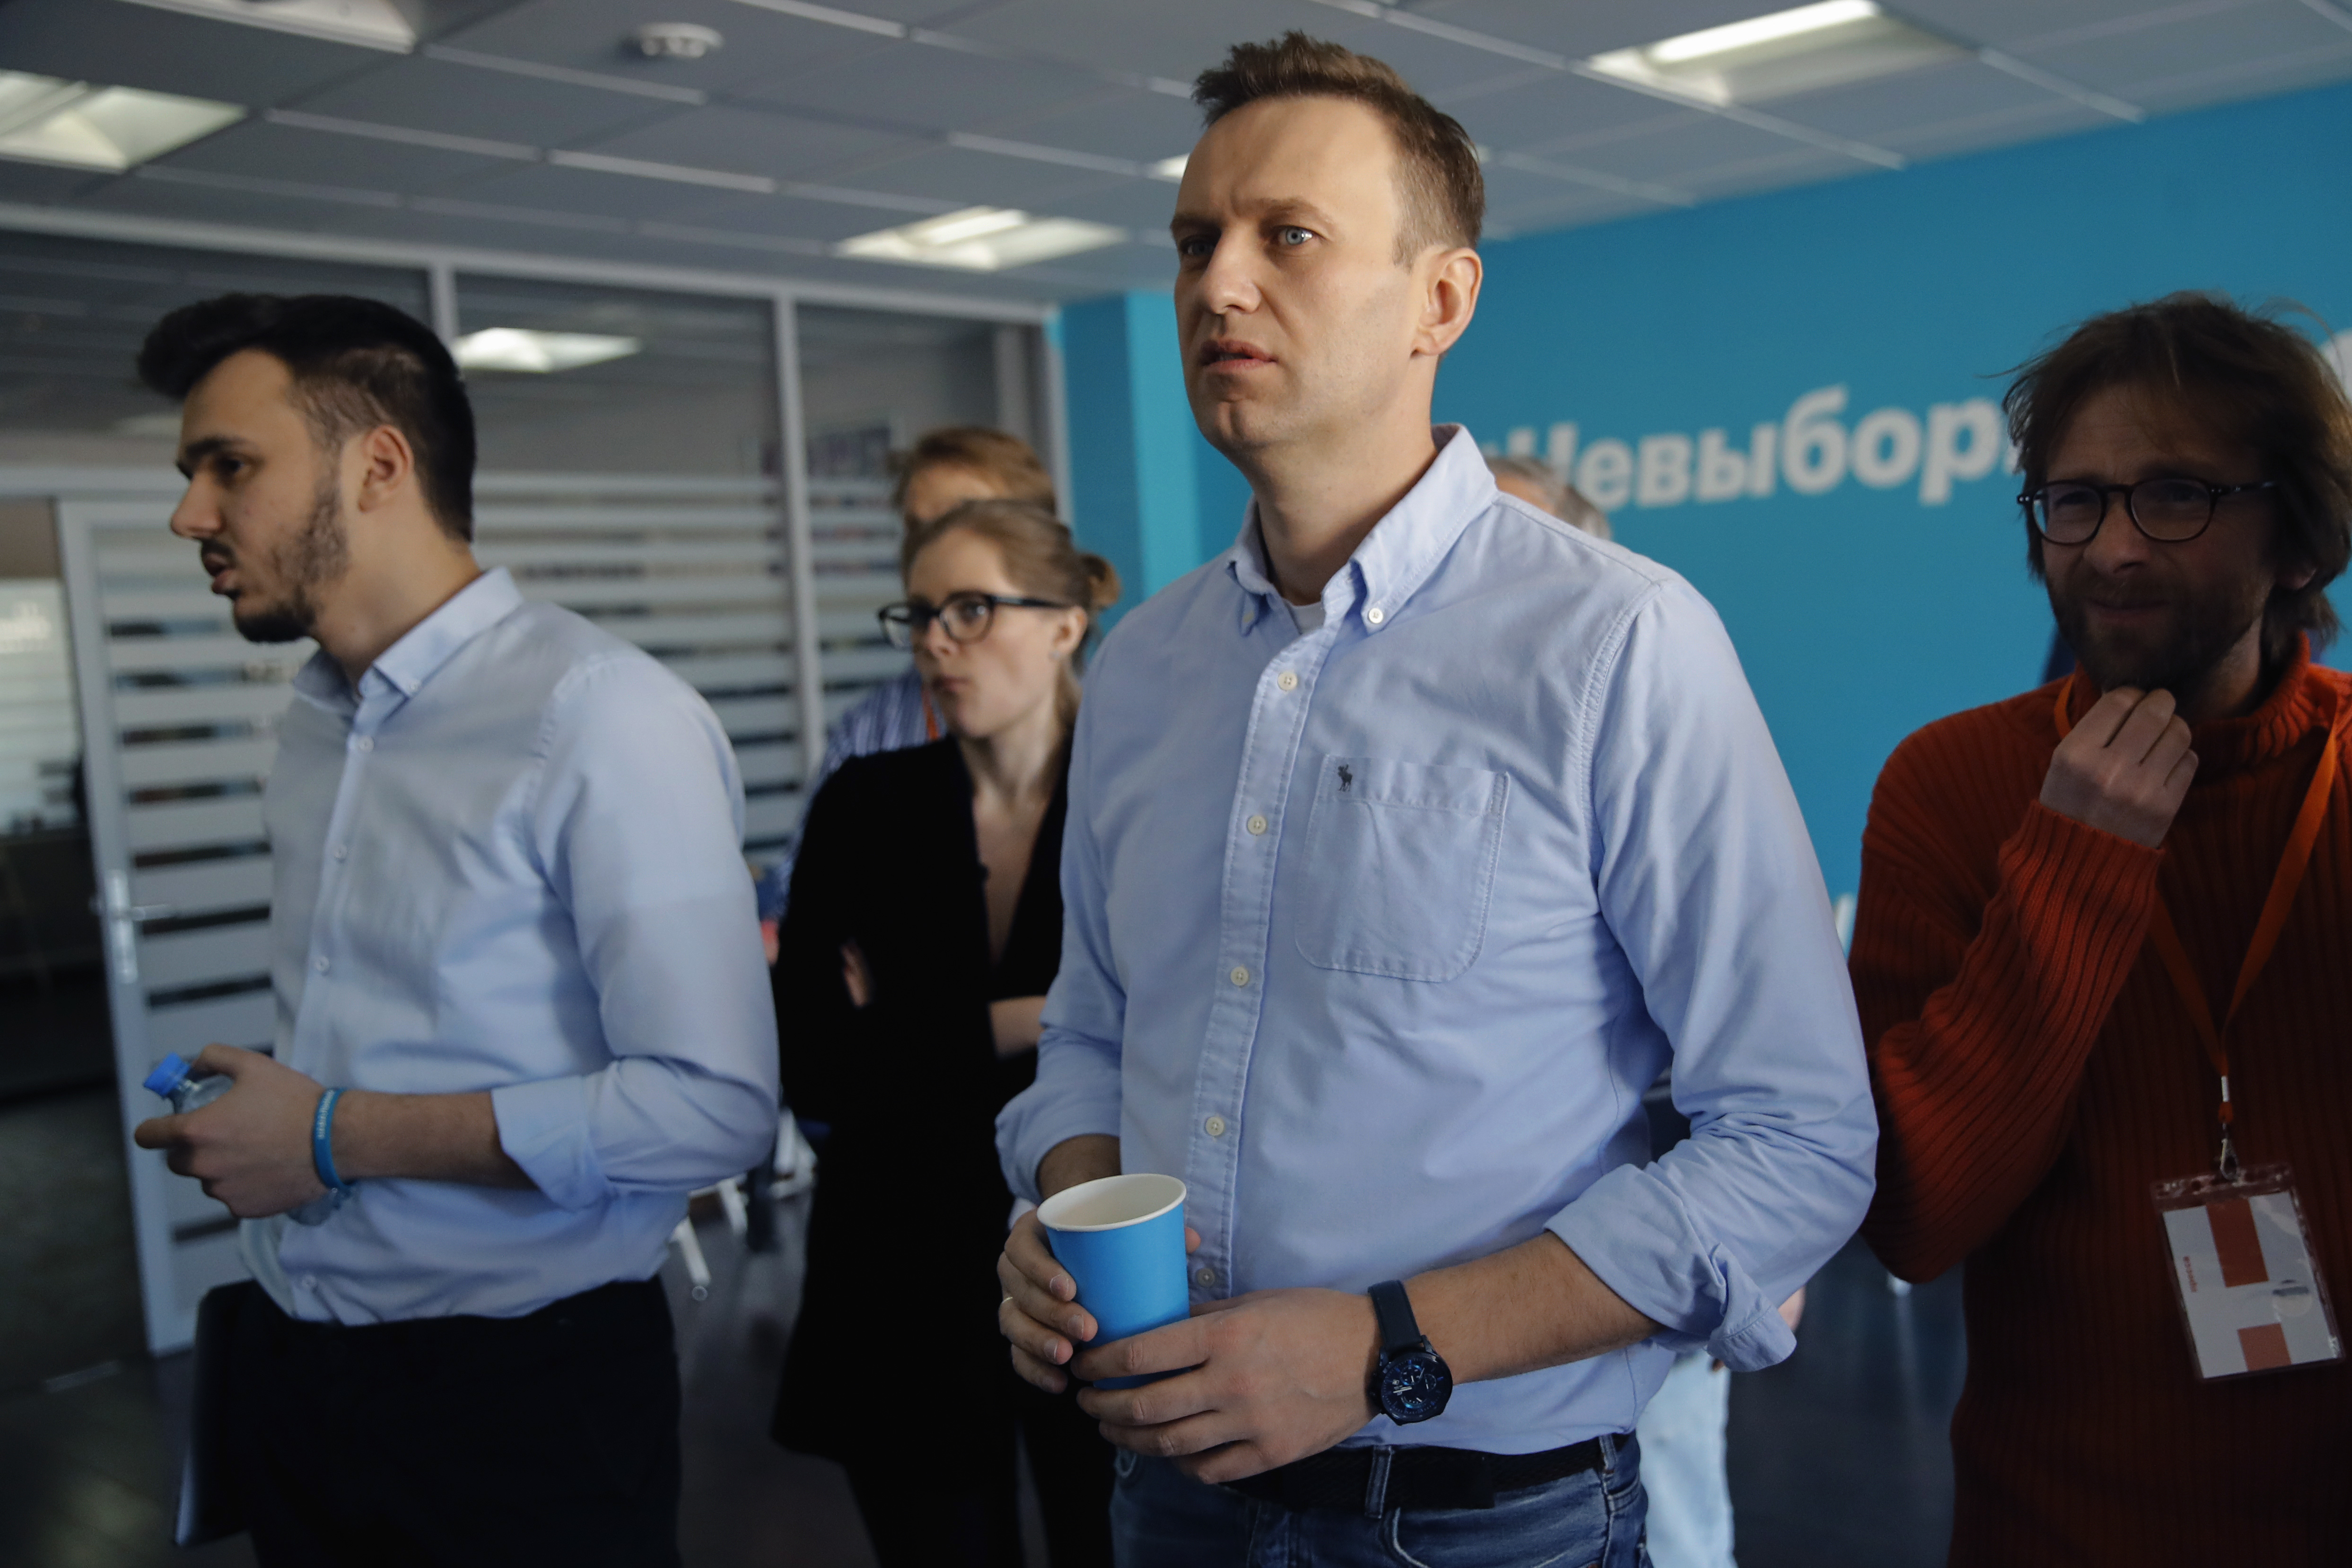 Russian opposition leader Alexei Navalny observes the election progress at his Foundation for Fighting Corruption office, in Russia, Sunday, March 18, 2018.